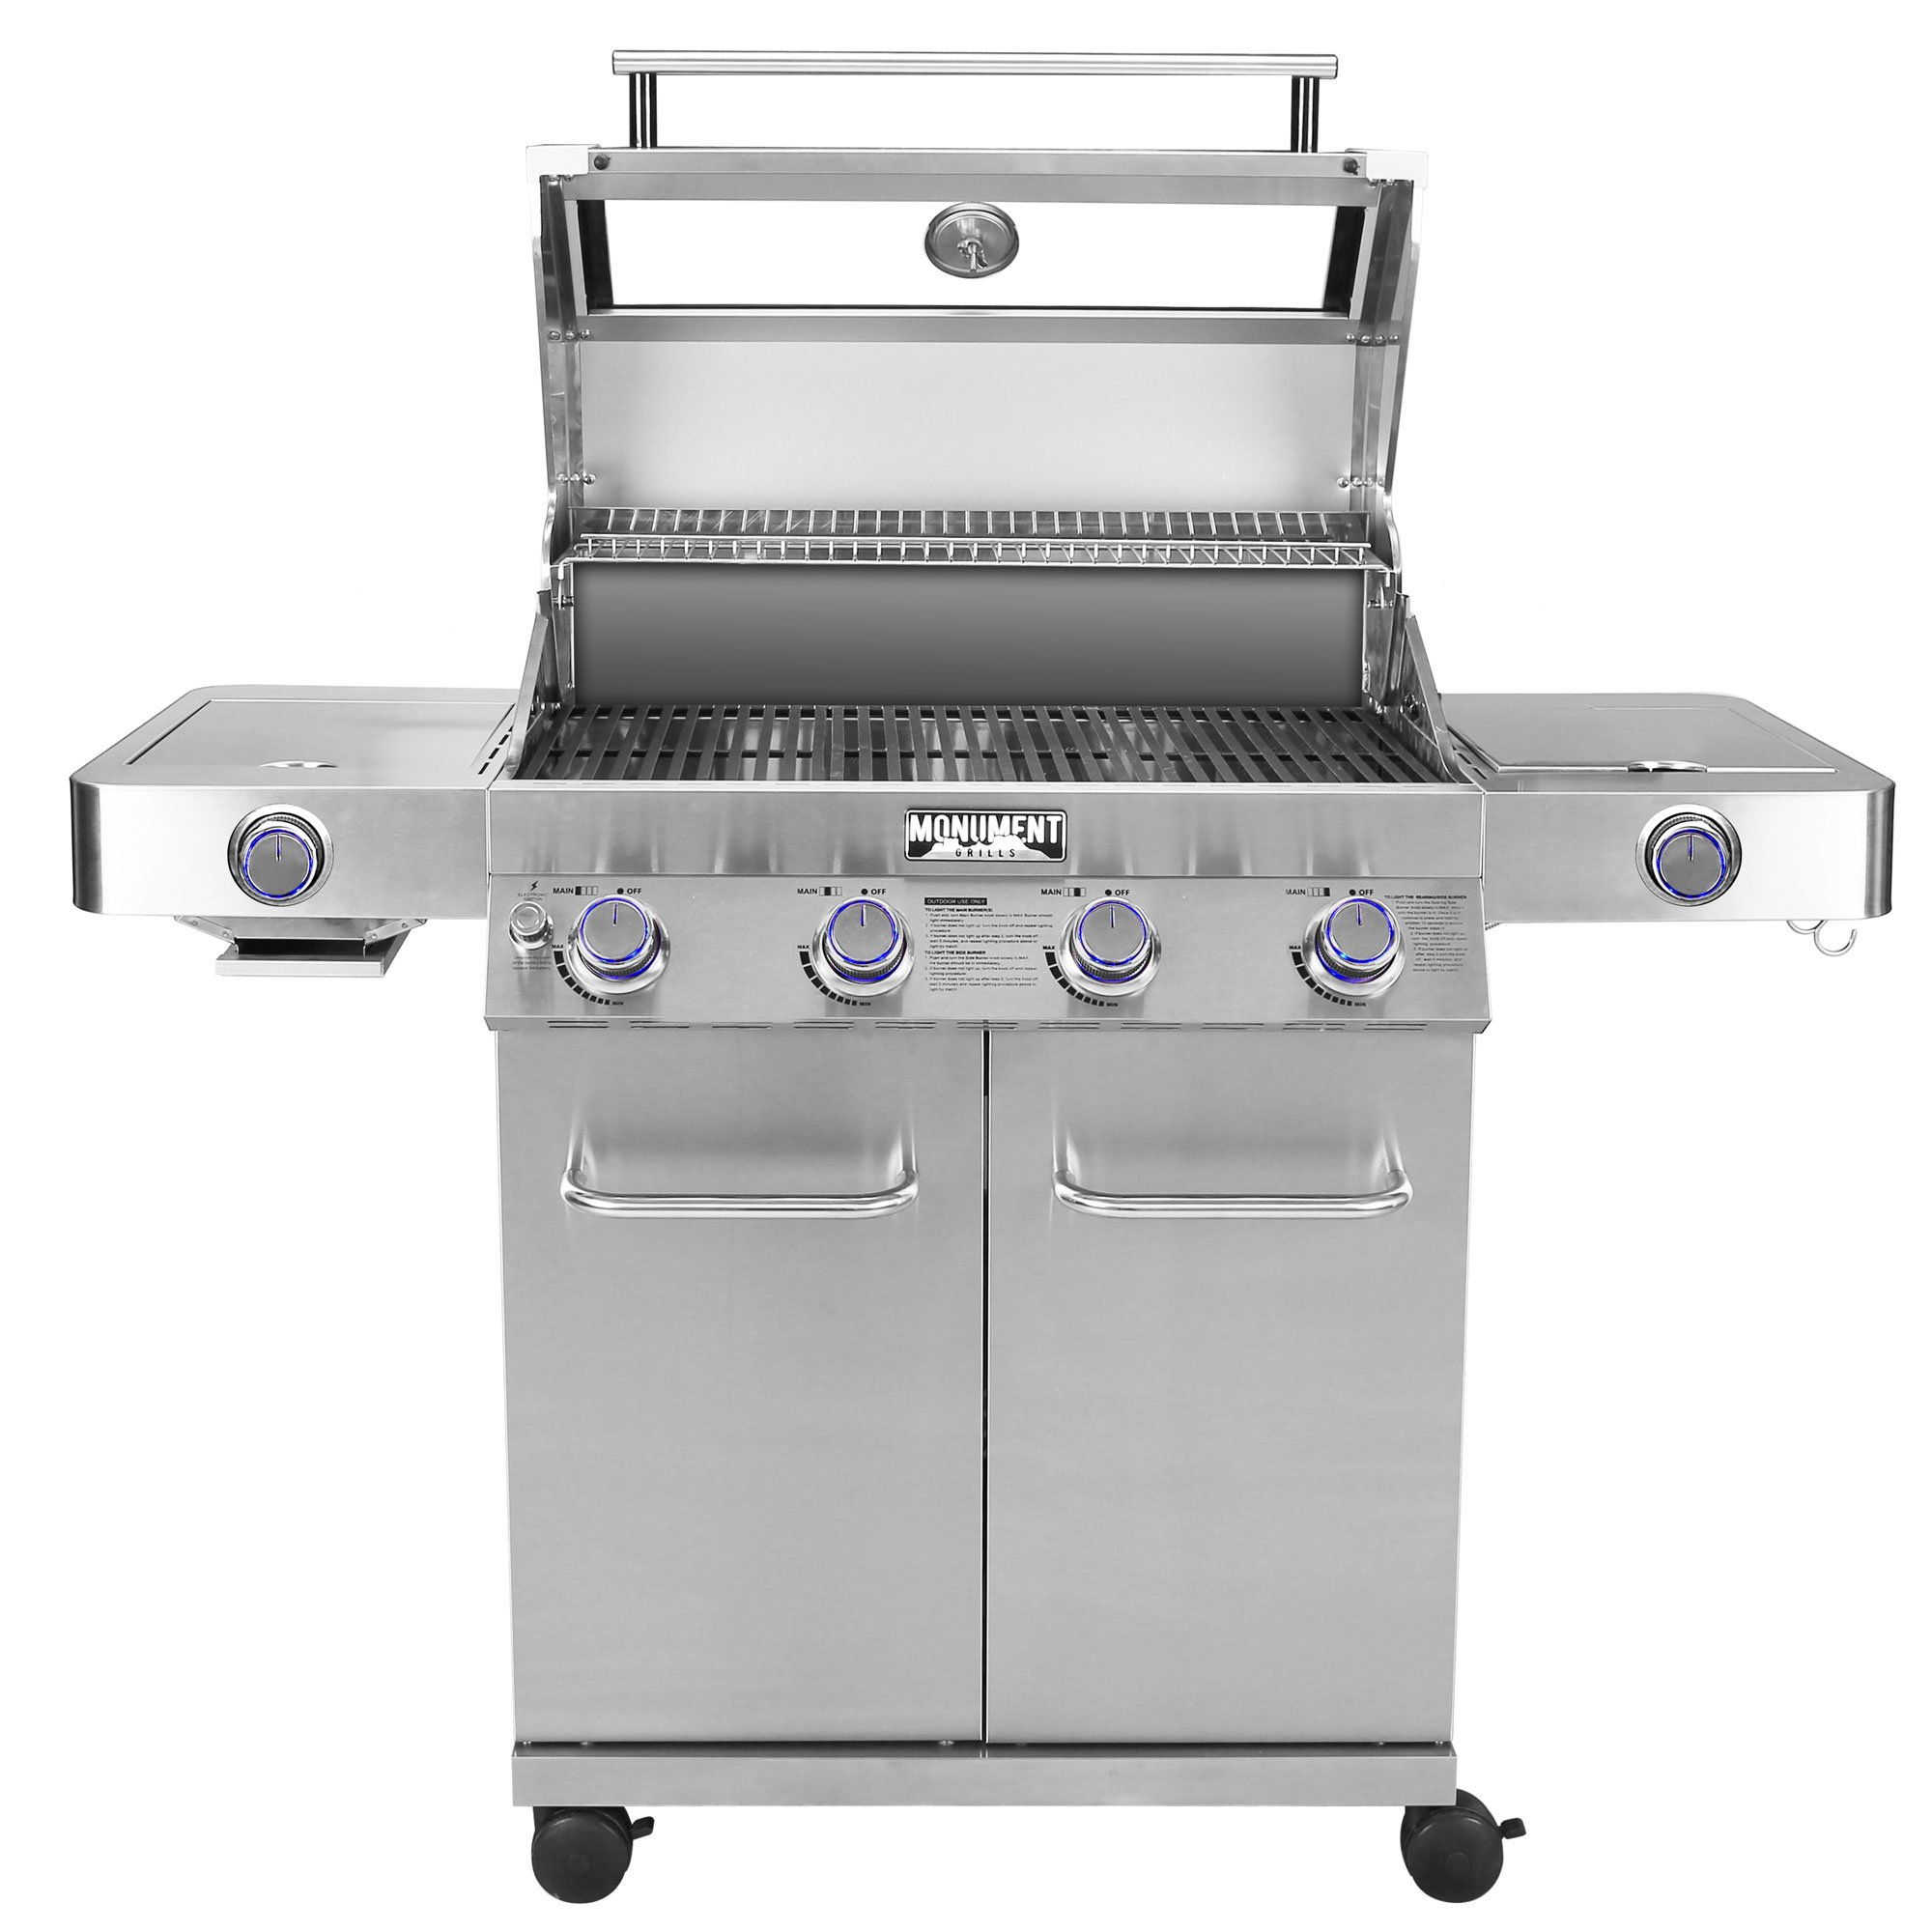 hight resolution of monument grills clearview lid 4 burner with side sear burner propane gas grill walmart com